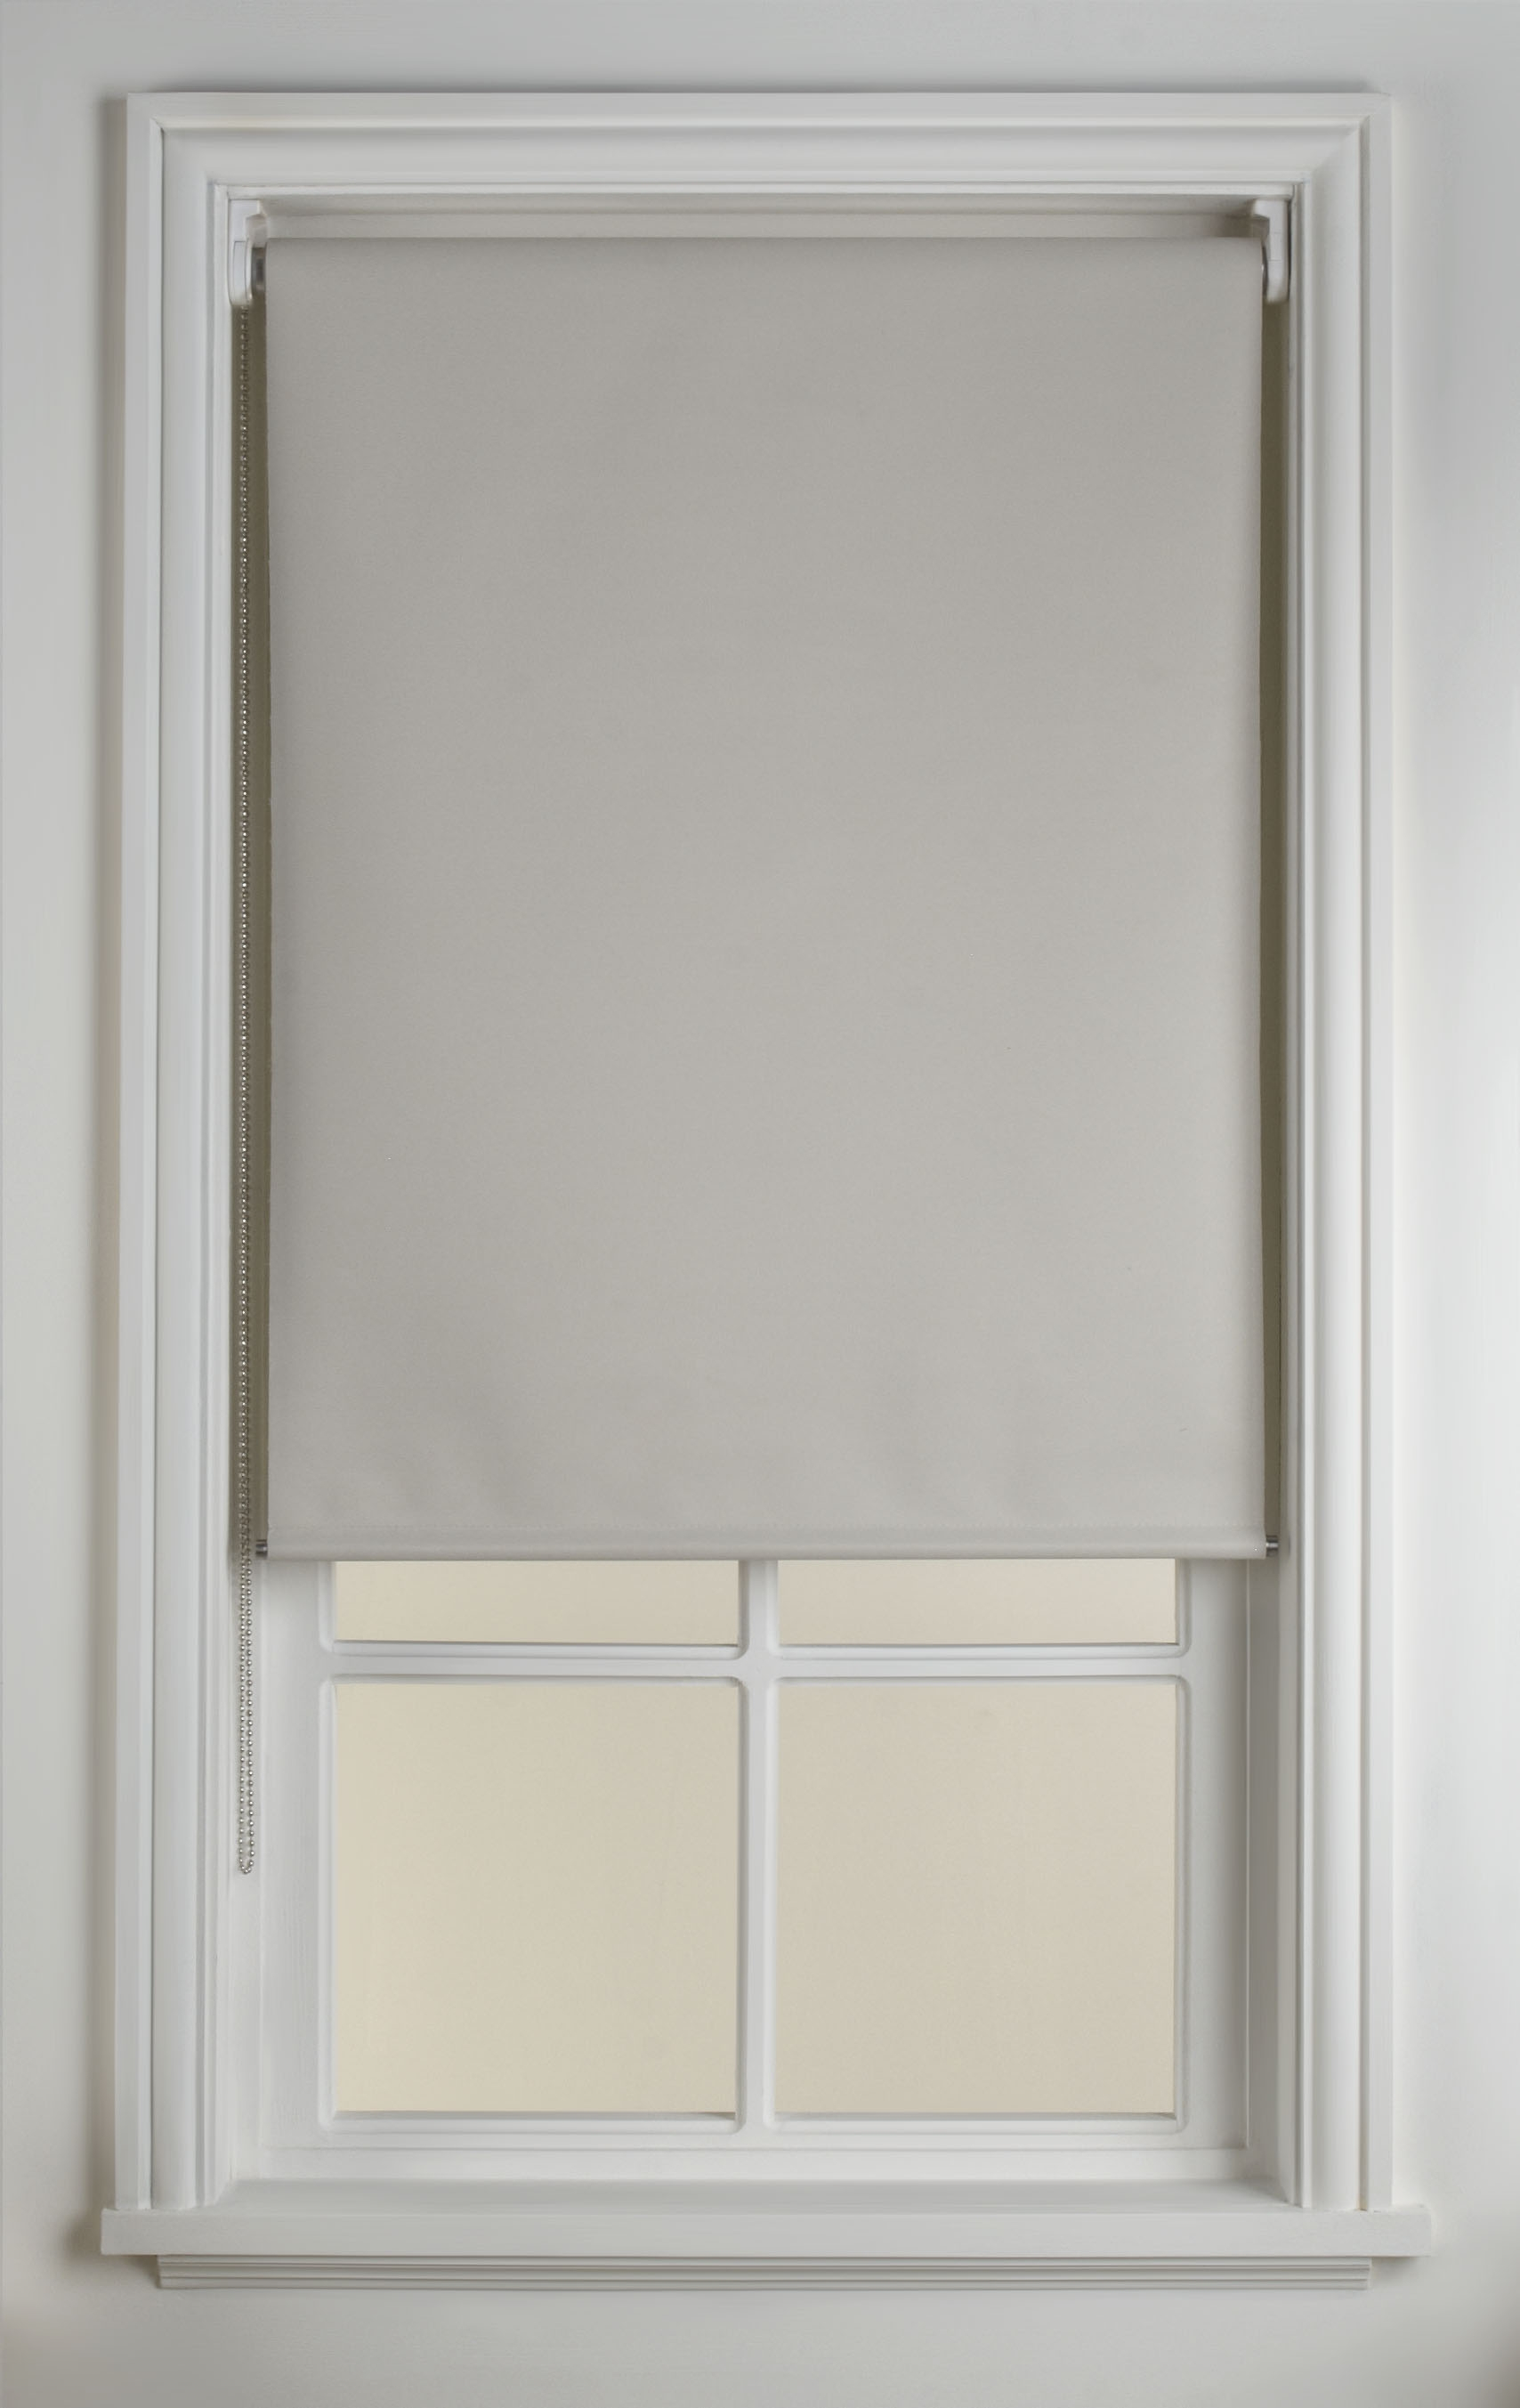 Cream Roman Blinds Yujiao Mao Semi Sheer Roman Blinds Ready Made Pertaining To Reverse Roller Blinds (Image 7 of 15)